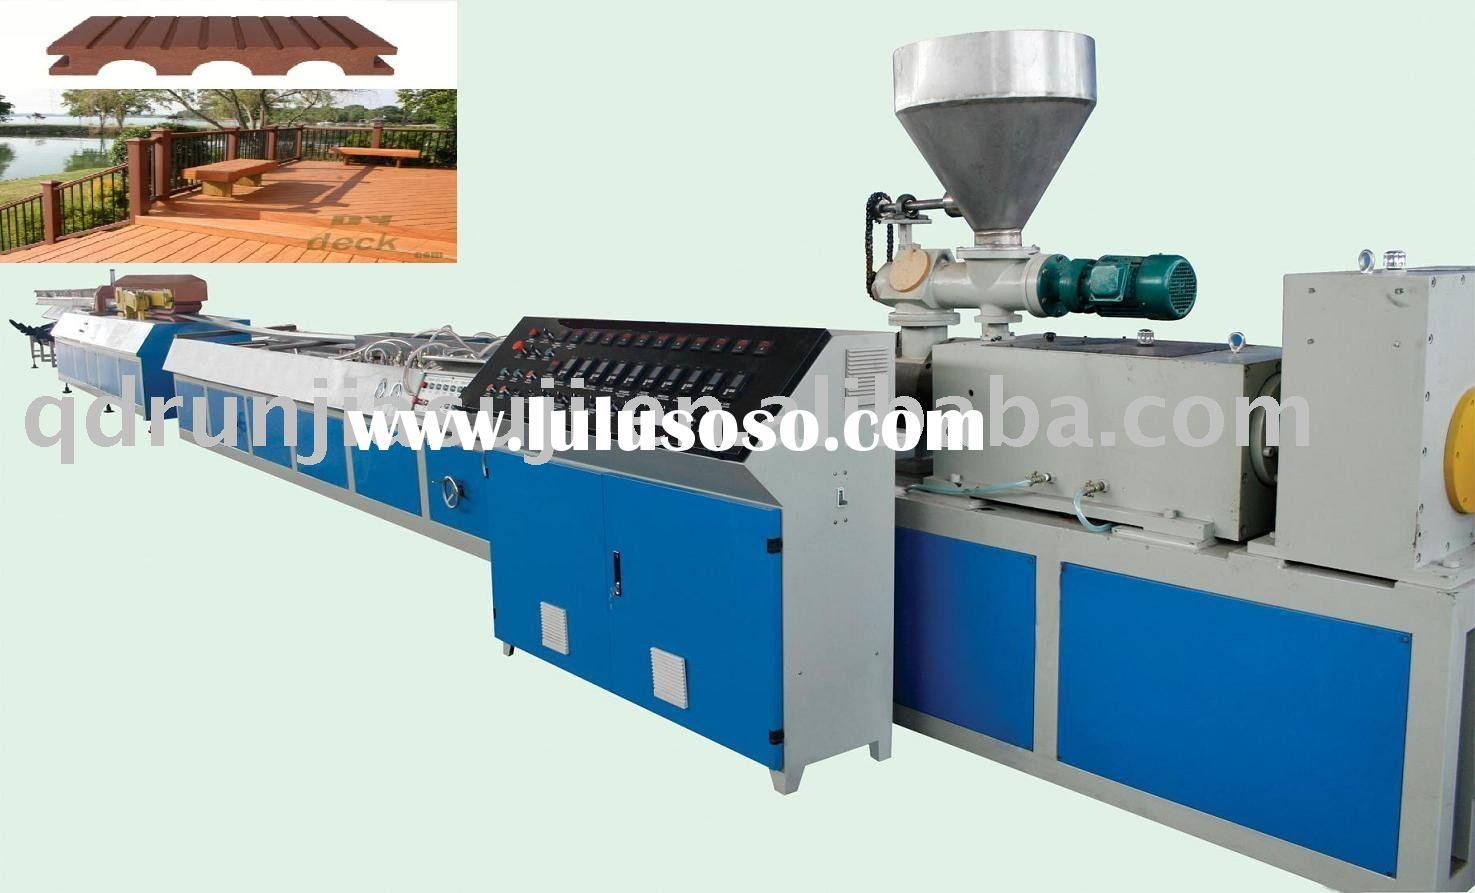 wpc wood plastic composite profile extrusion machine manufacture